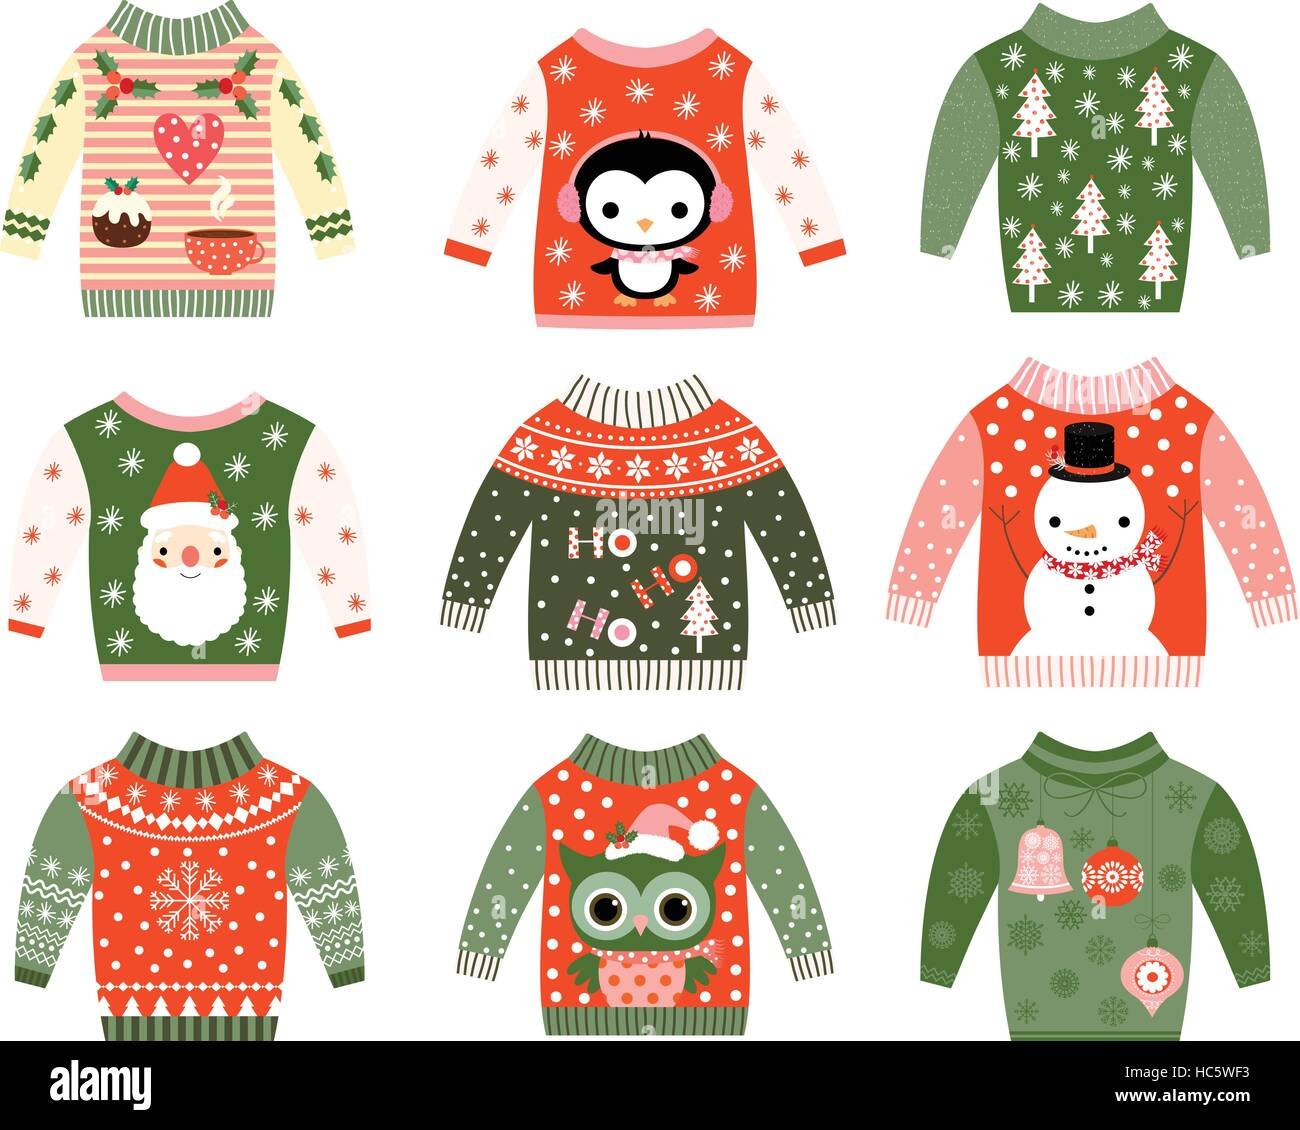 bad5070aa8 Cute ugly Christmas sweater designs vector set